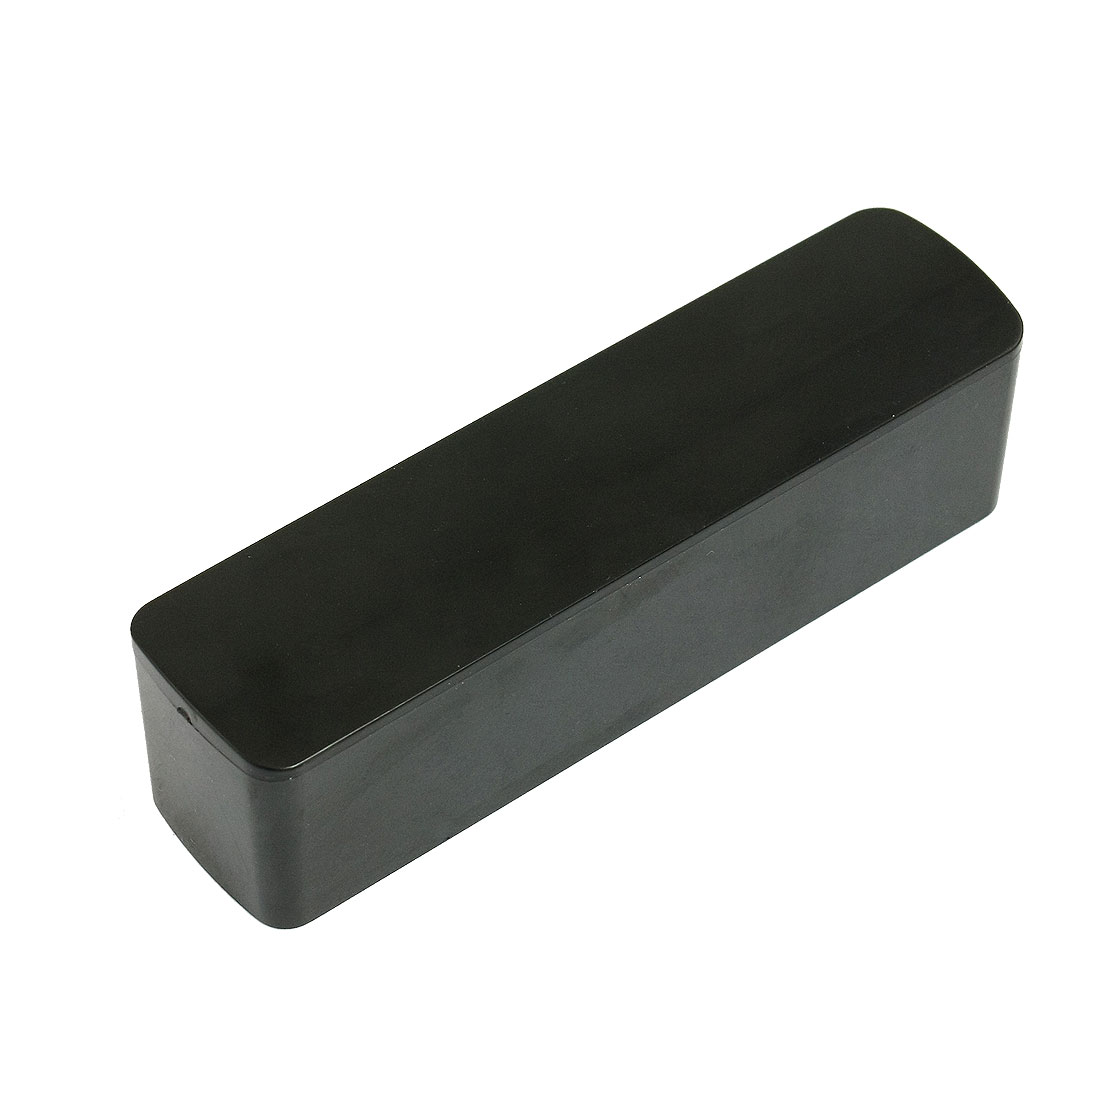 Black Rectangular Shape Plastic Stamp Stamper Box Storage Case